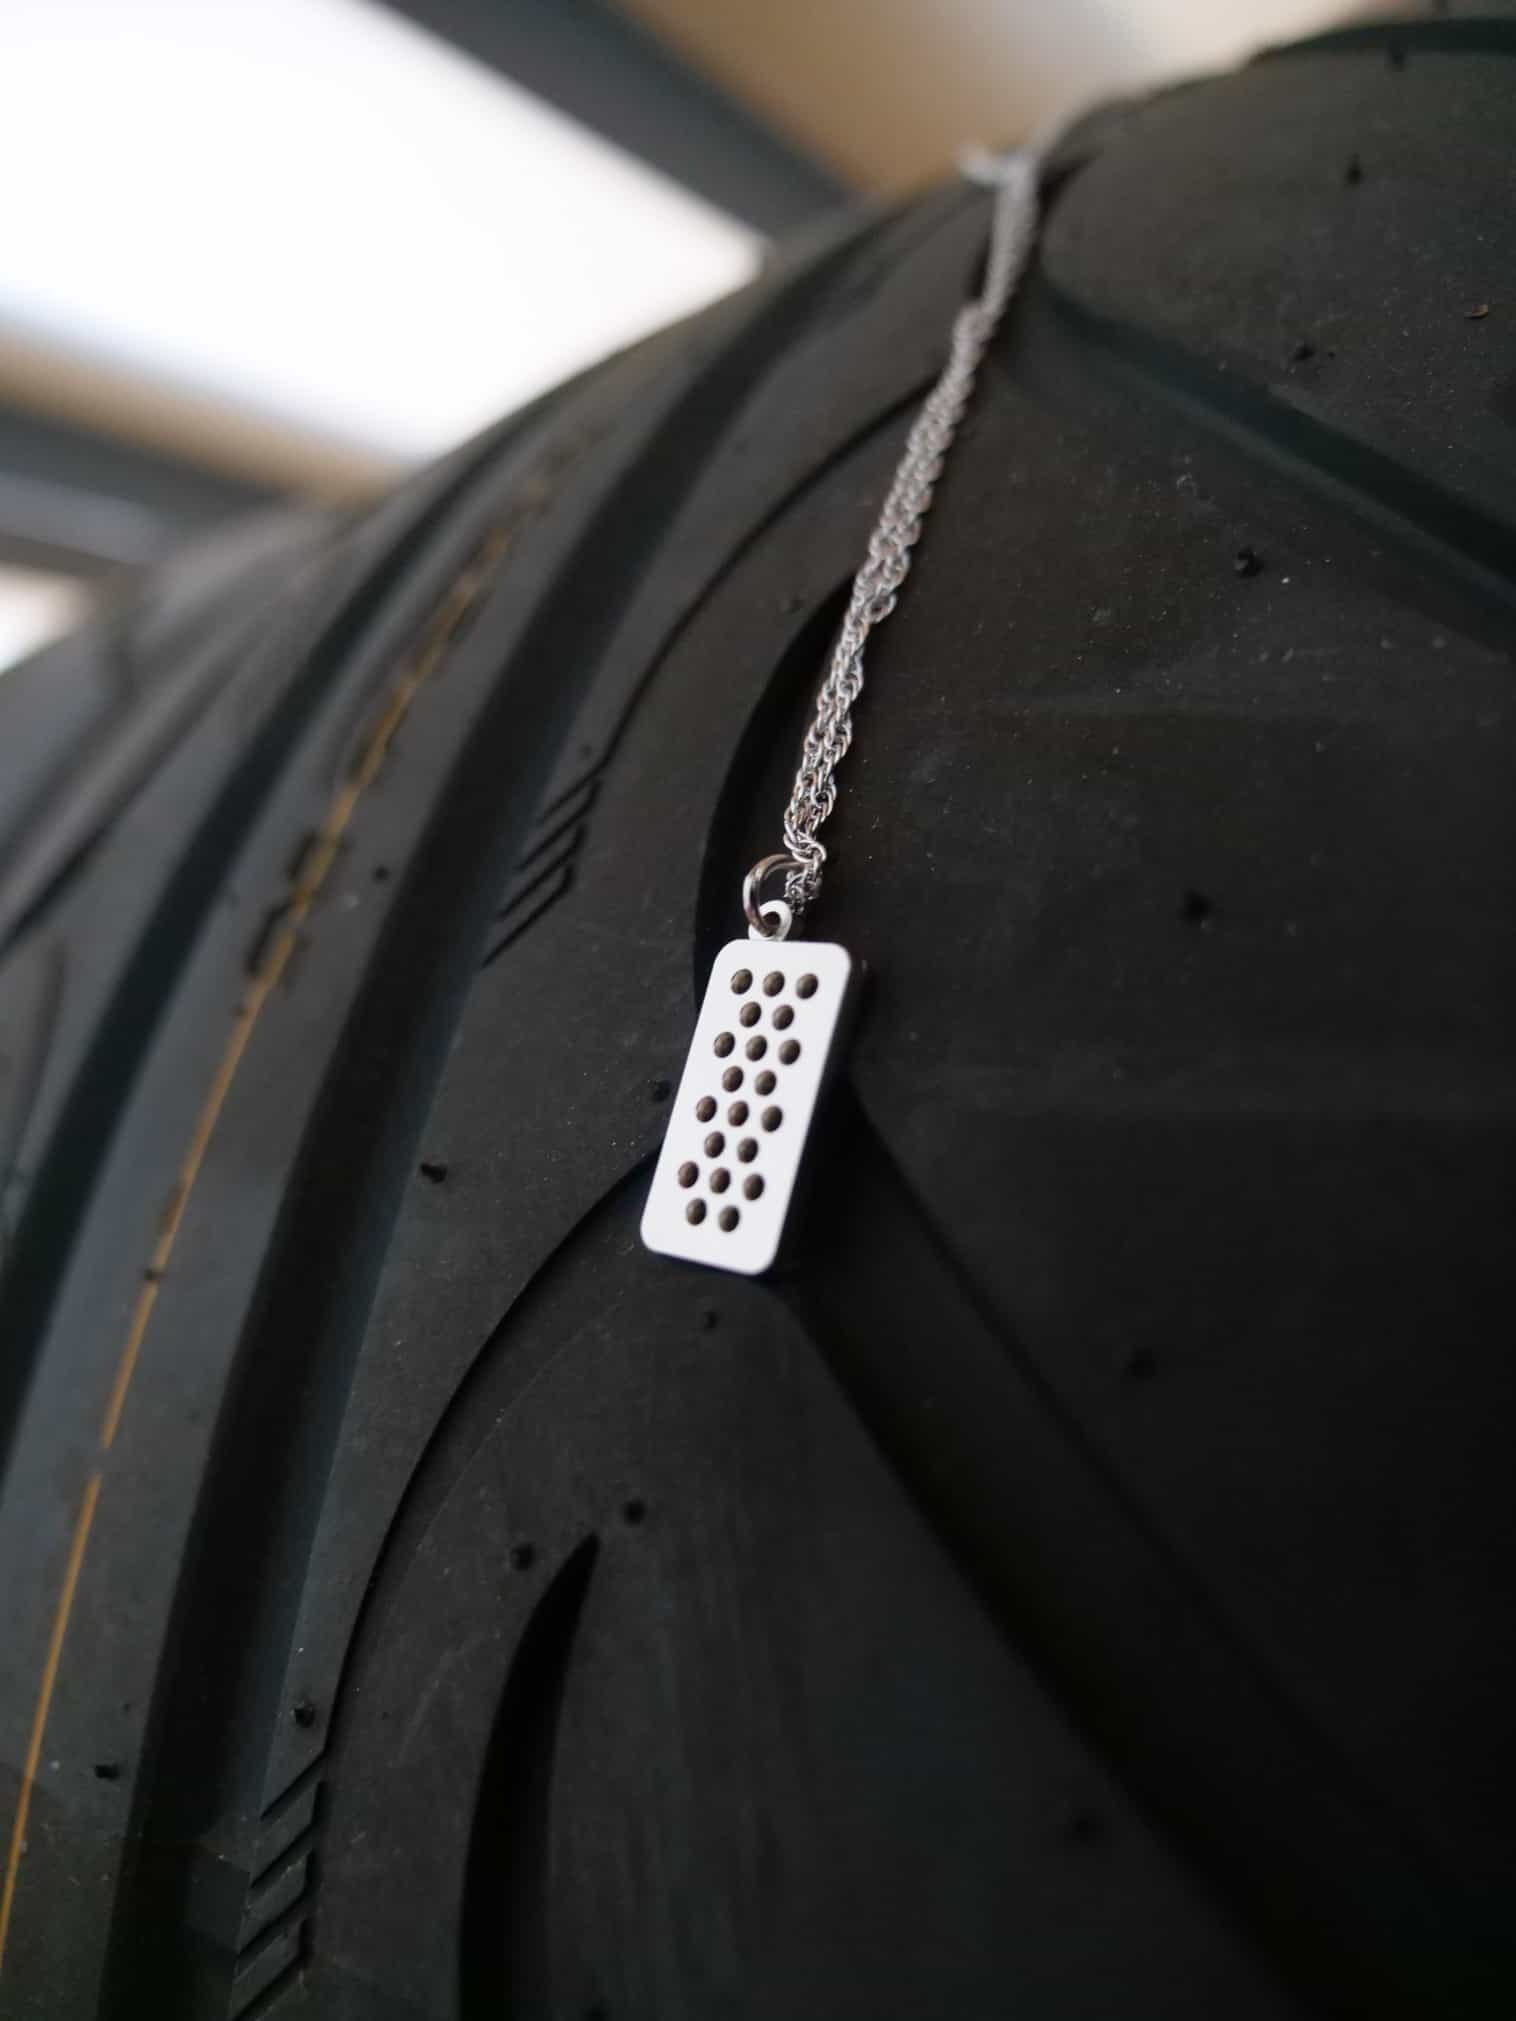 throtl Pedal Necklace First Edition